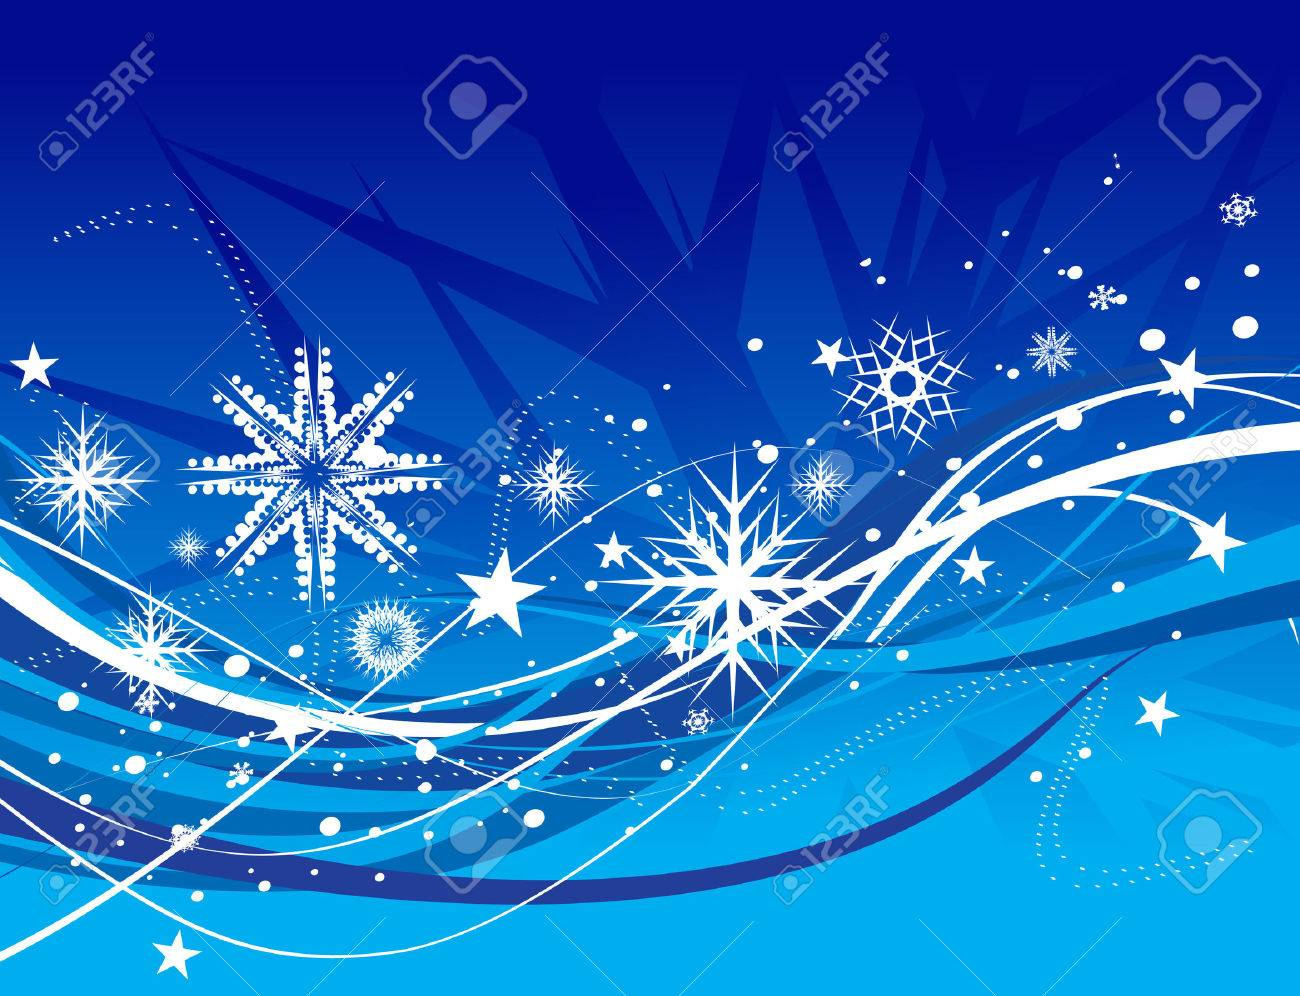 Abstract christmas snow on wave line background, vector illustration for xmas Stock Vector - 6035905